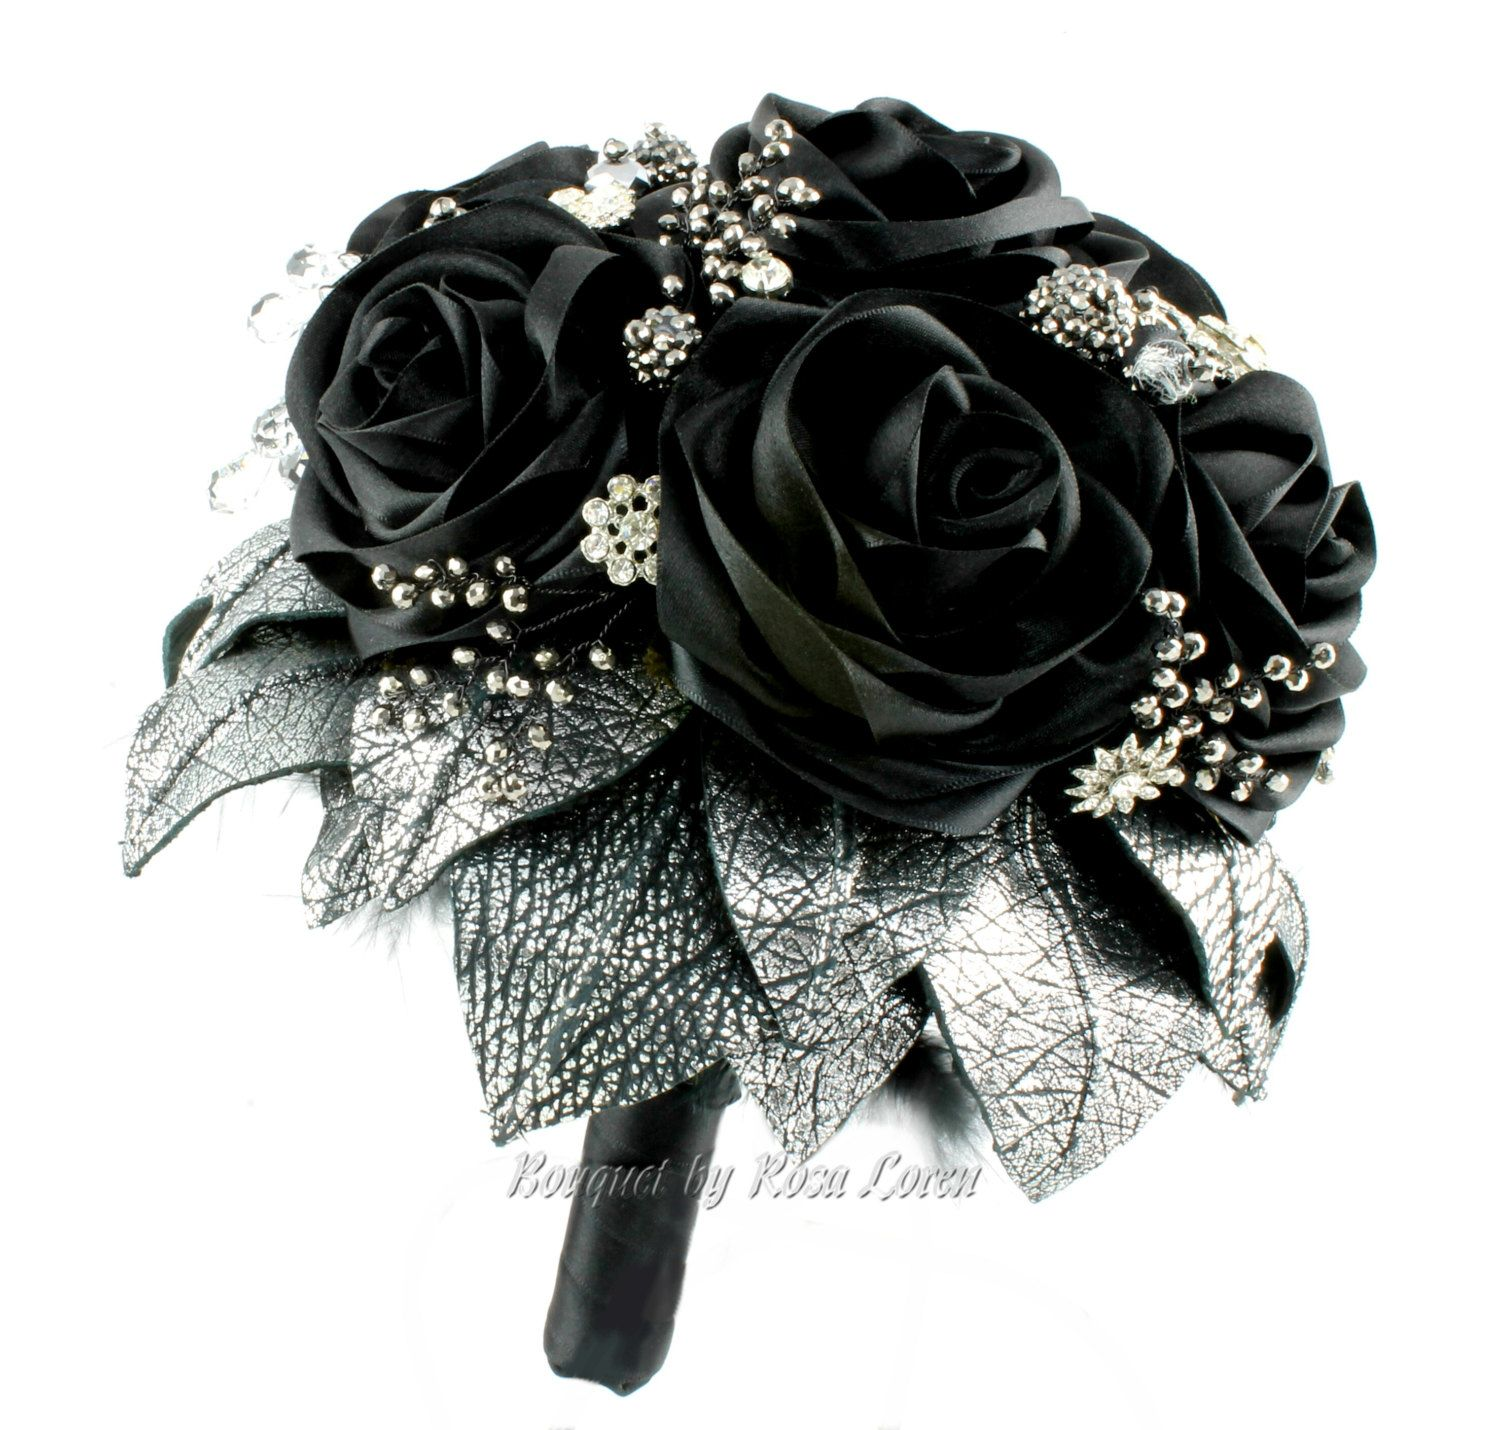 Black bouquet silver bouquet black bridal by bouquetbyrosaloren black bouquet silver bouquet black bridal by bouquetbyrosaloren 40000 izmirmasajfo